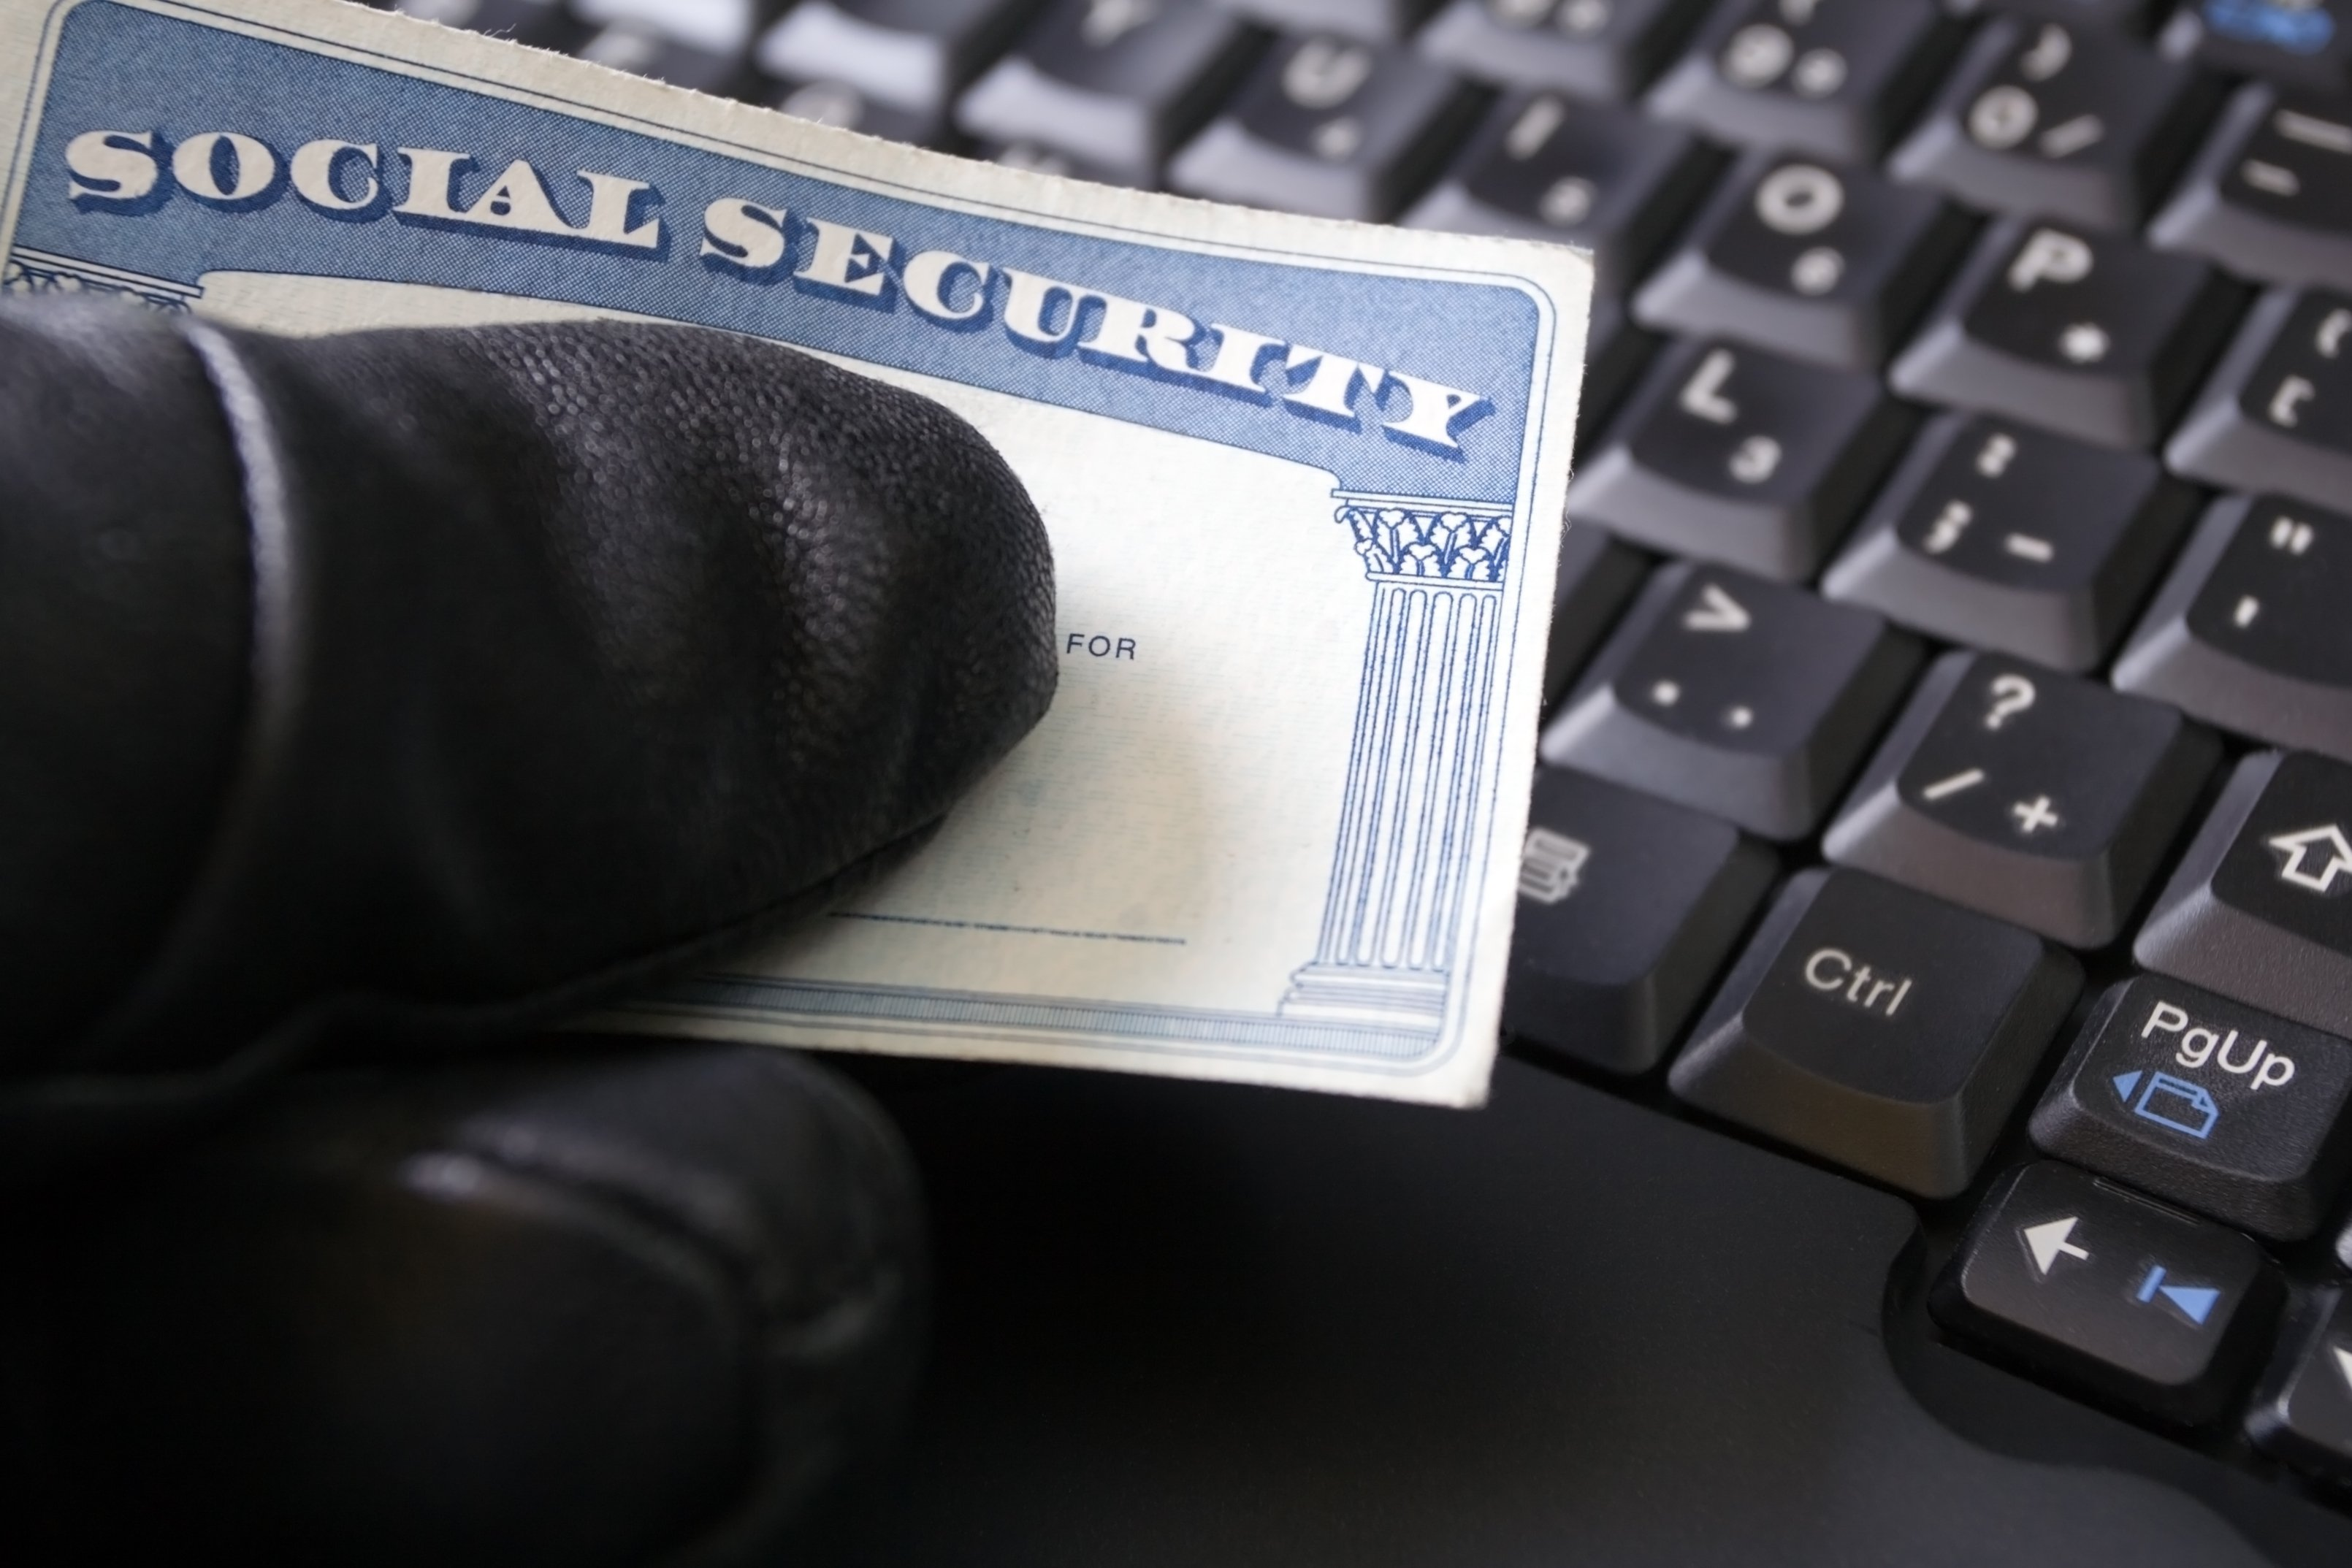 Identity Theft: The Unmistakable Warning Signs Your Identity Was Stolen